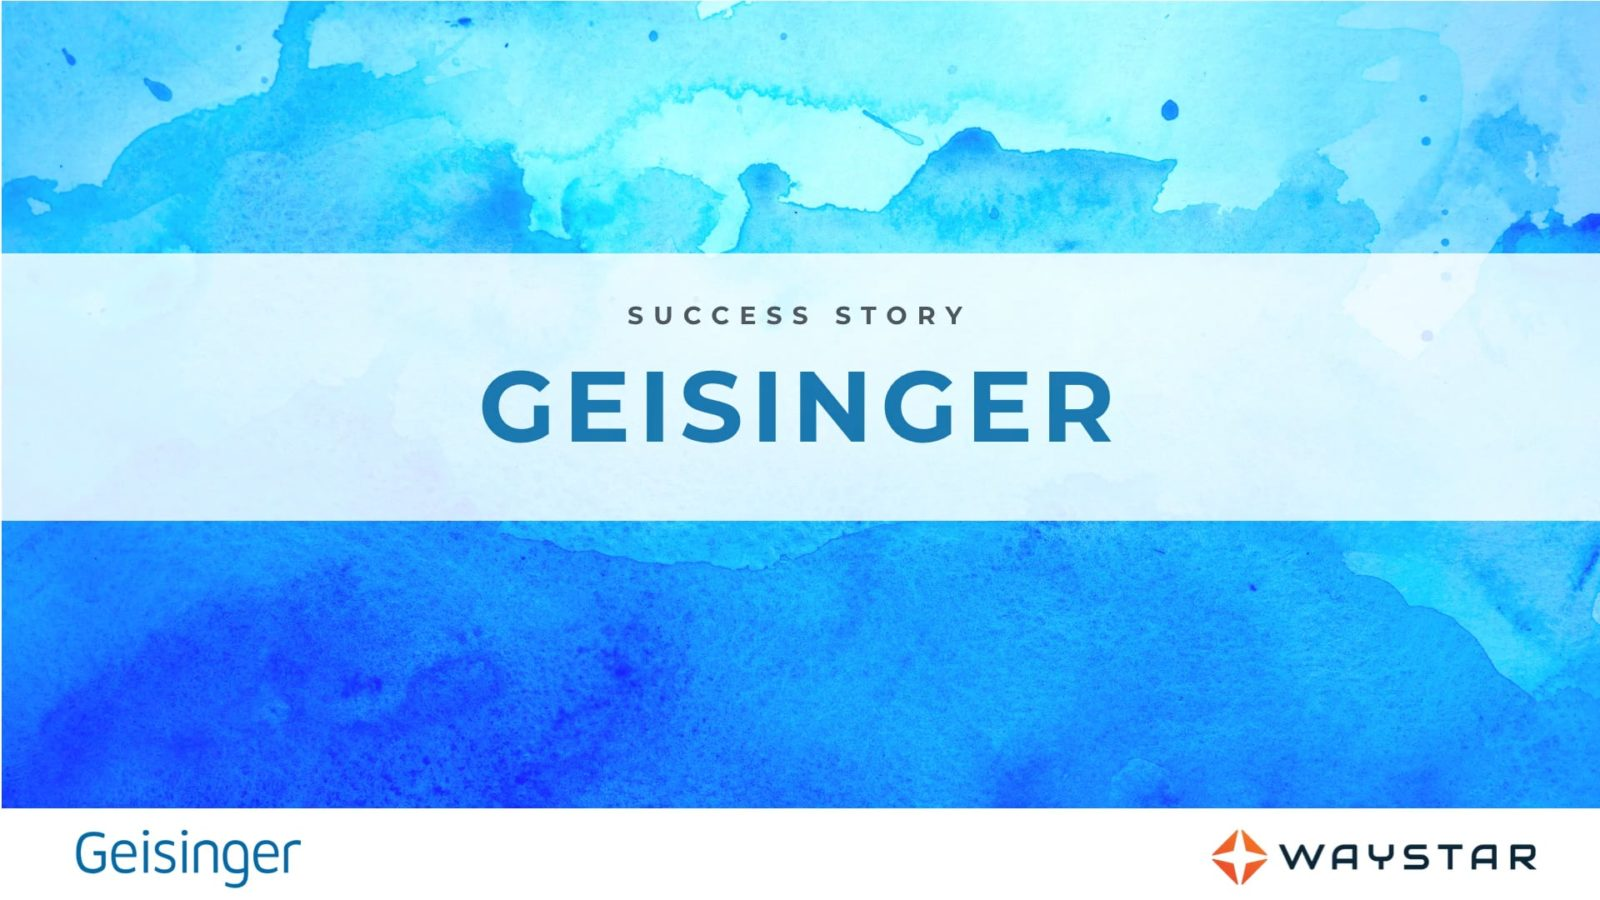 Success story: Geisinger